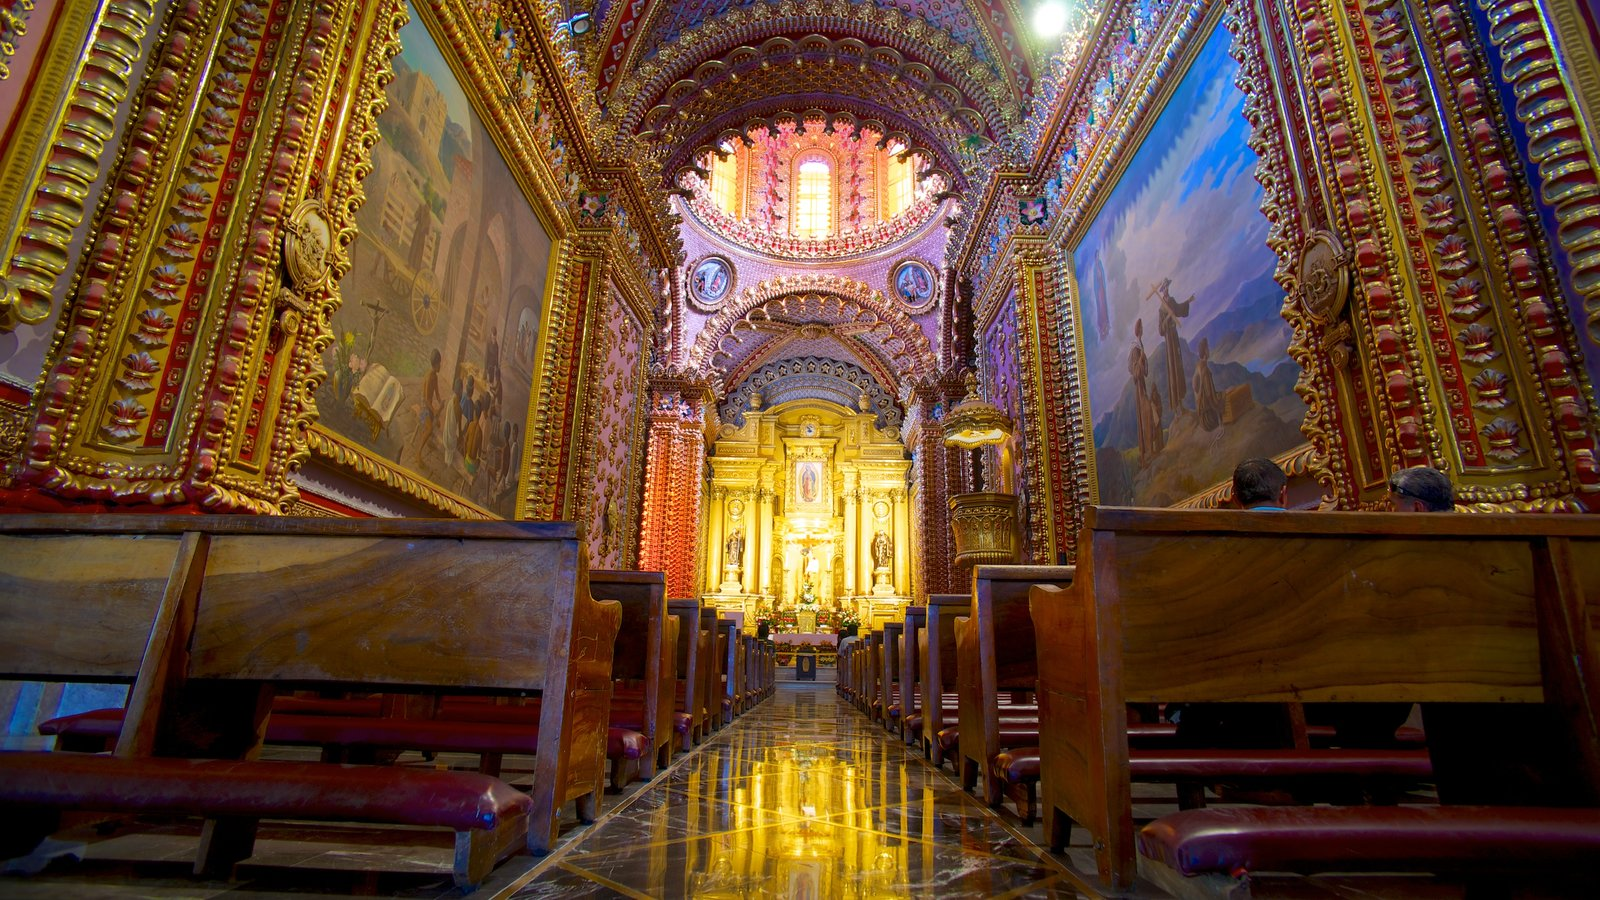 Morelia showing religious aspects, a church or cathedral and interior views